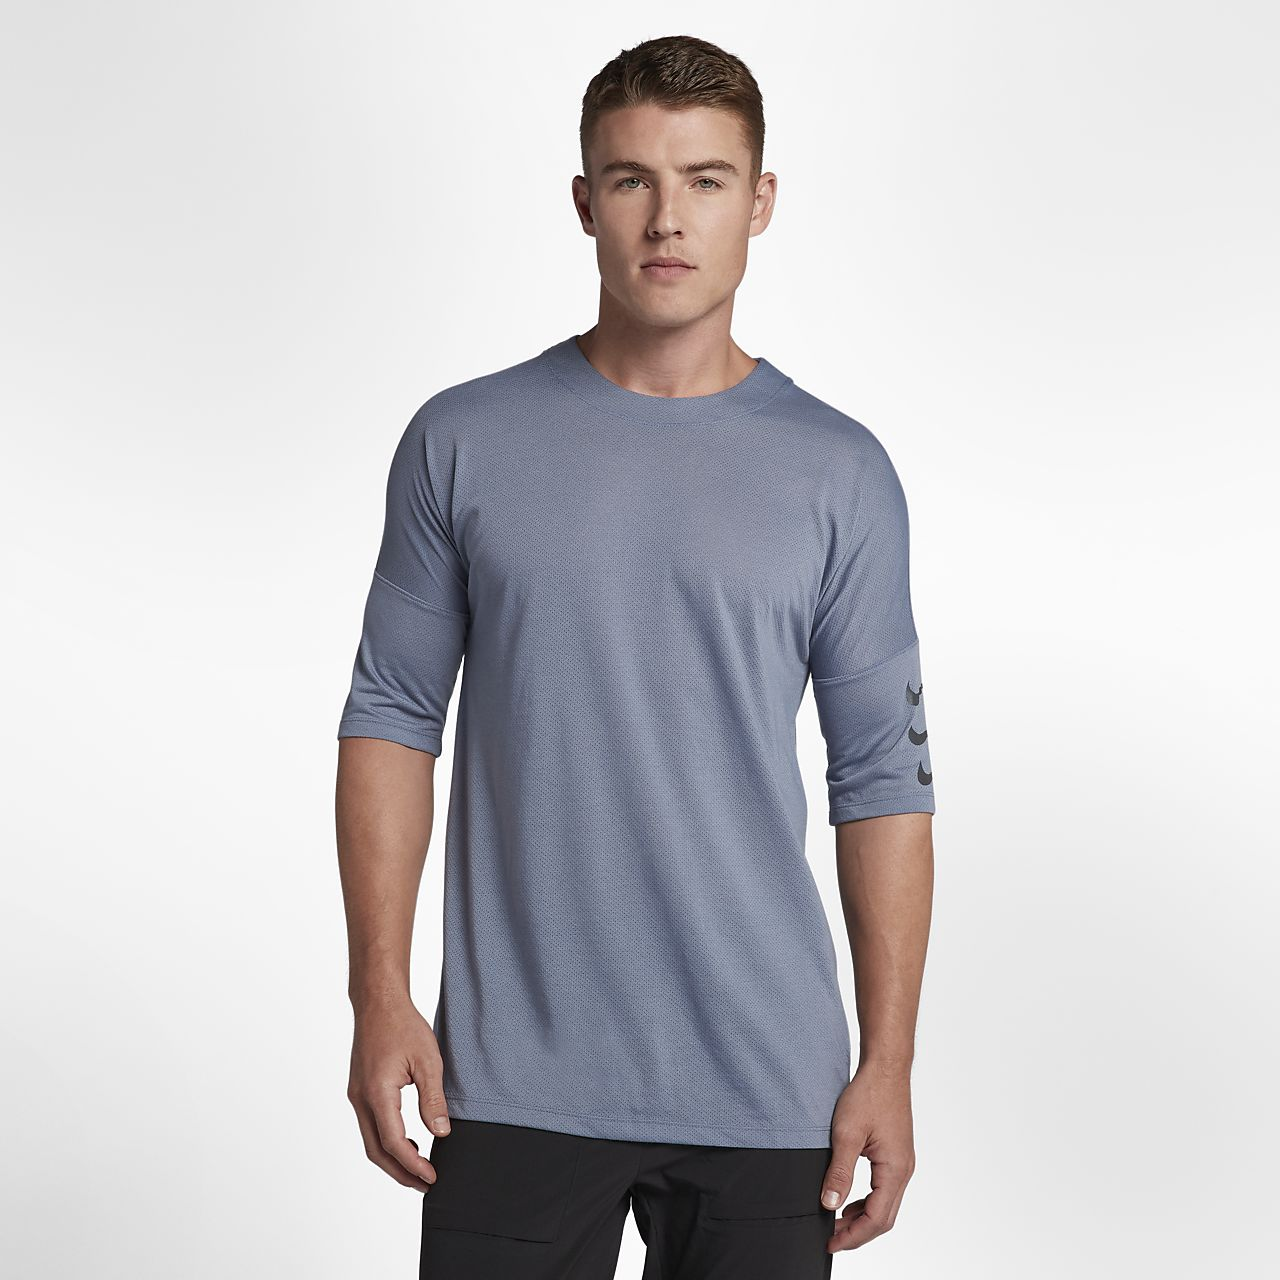 Nike Rise 365 Men's Half-Sleeve Running Top